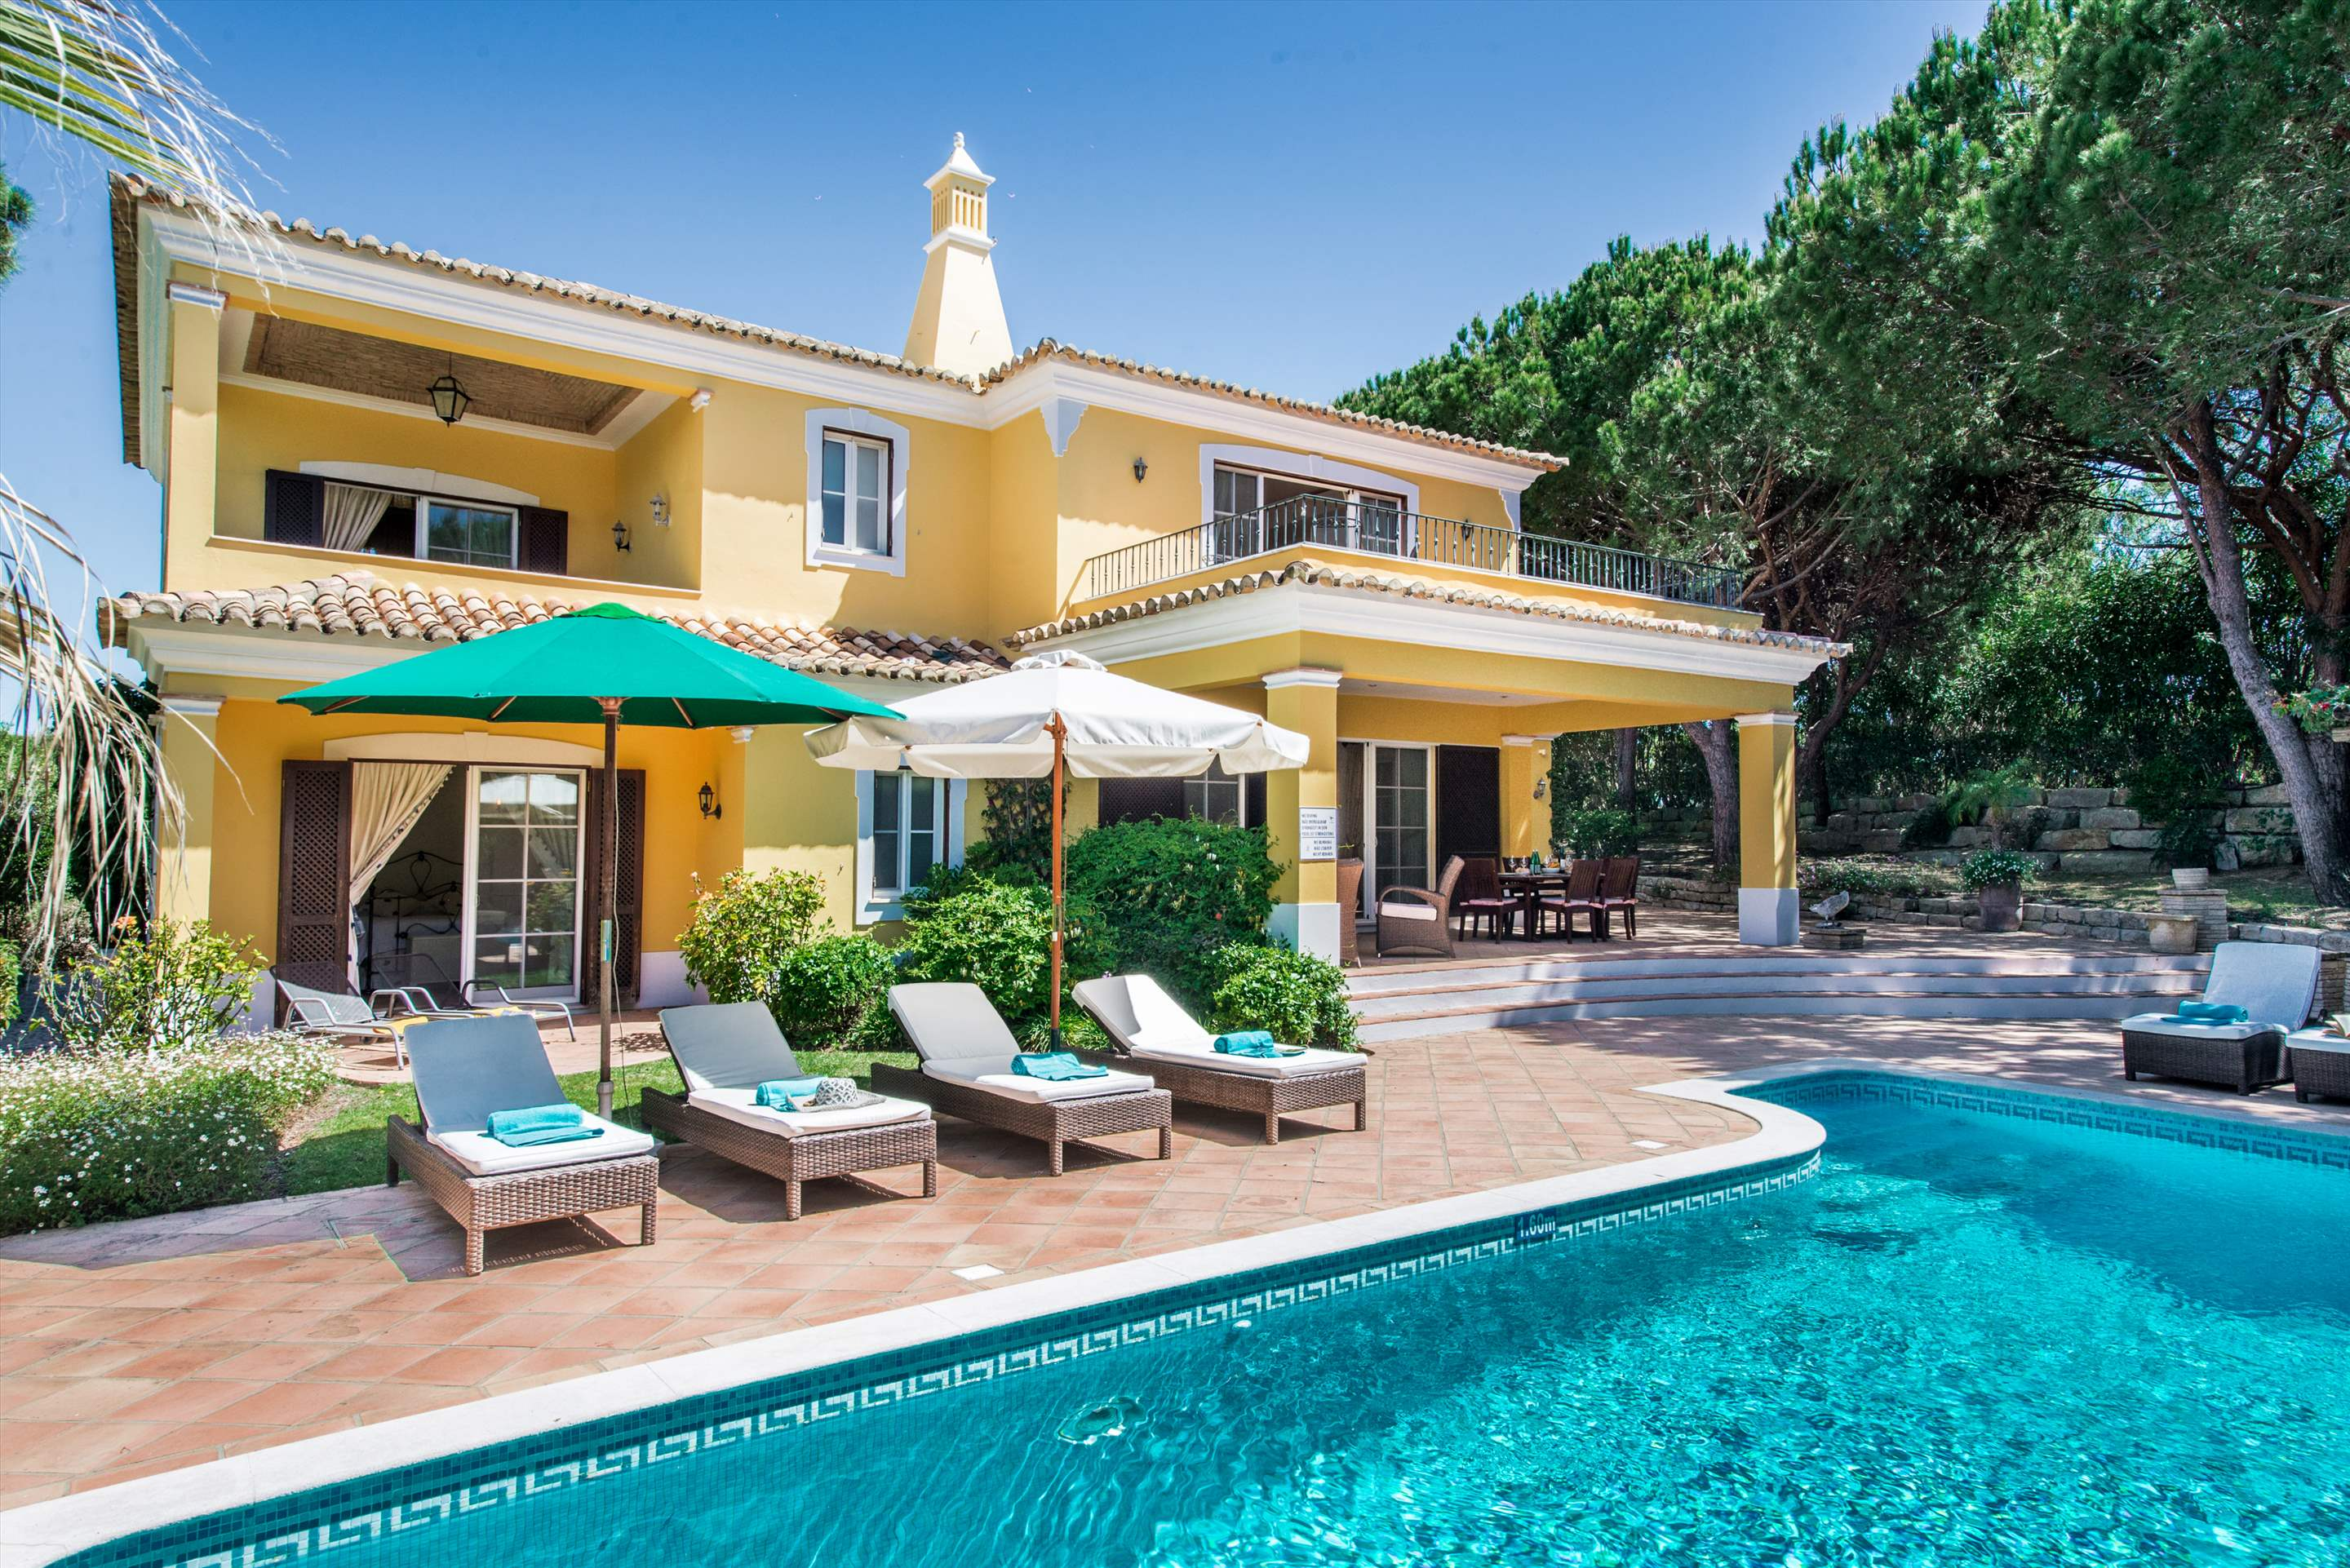 Casa da Paz, 4 bedroom villa in Quinta do Lago, Algarve